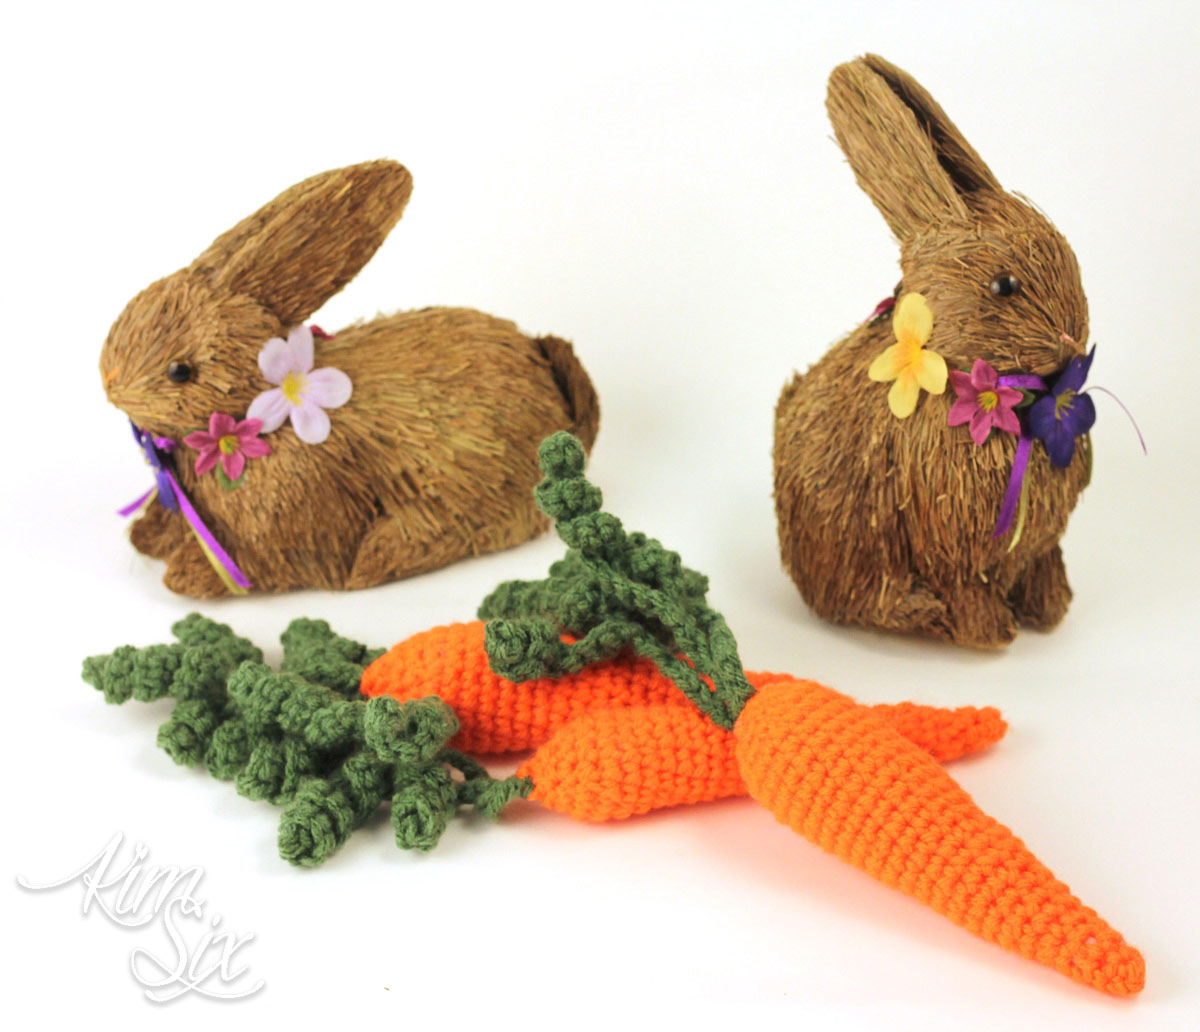 Crocheted decorative carrots for easter